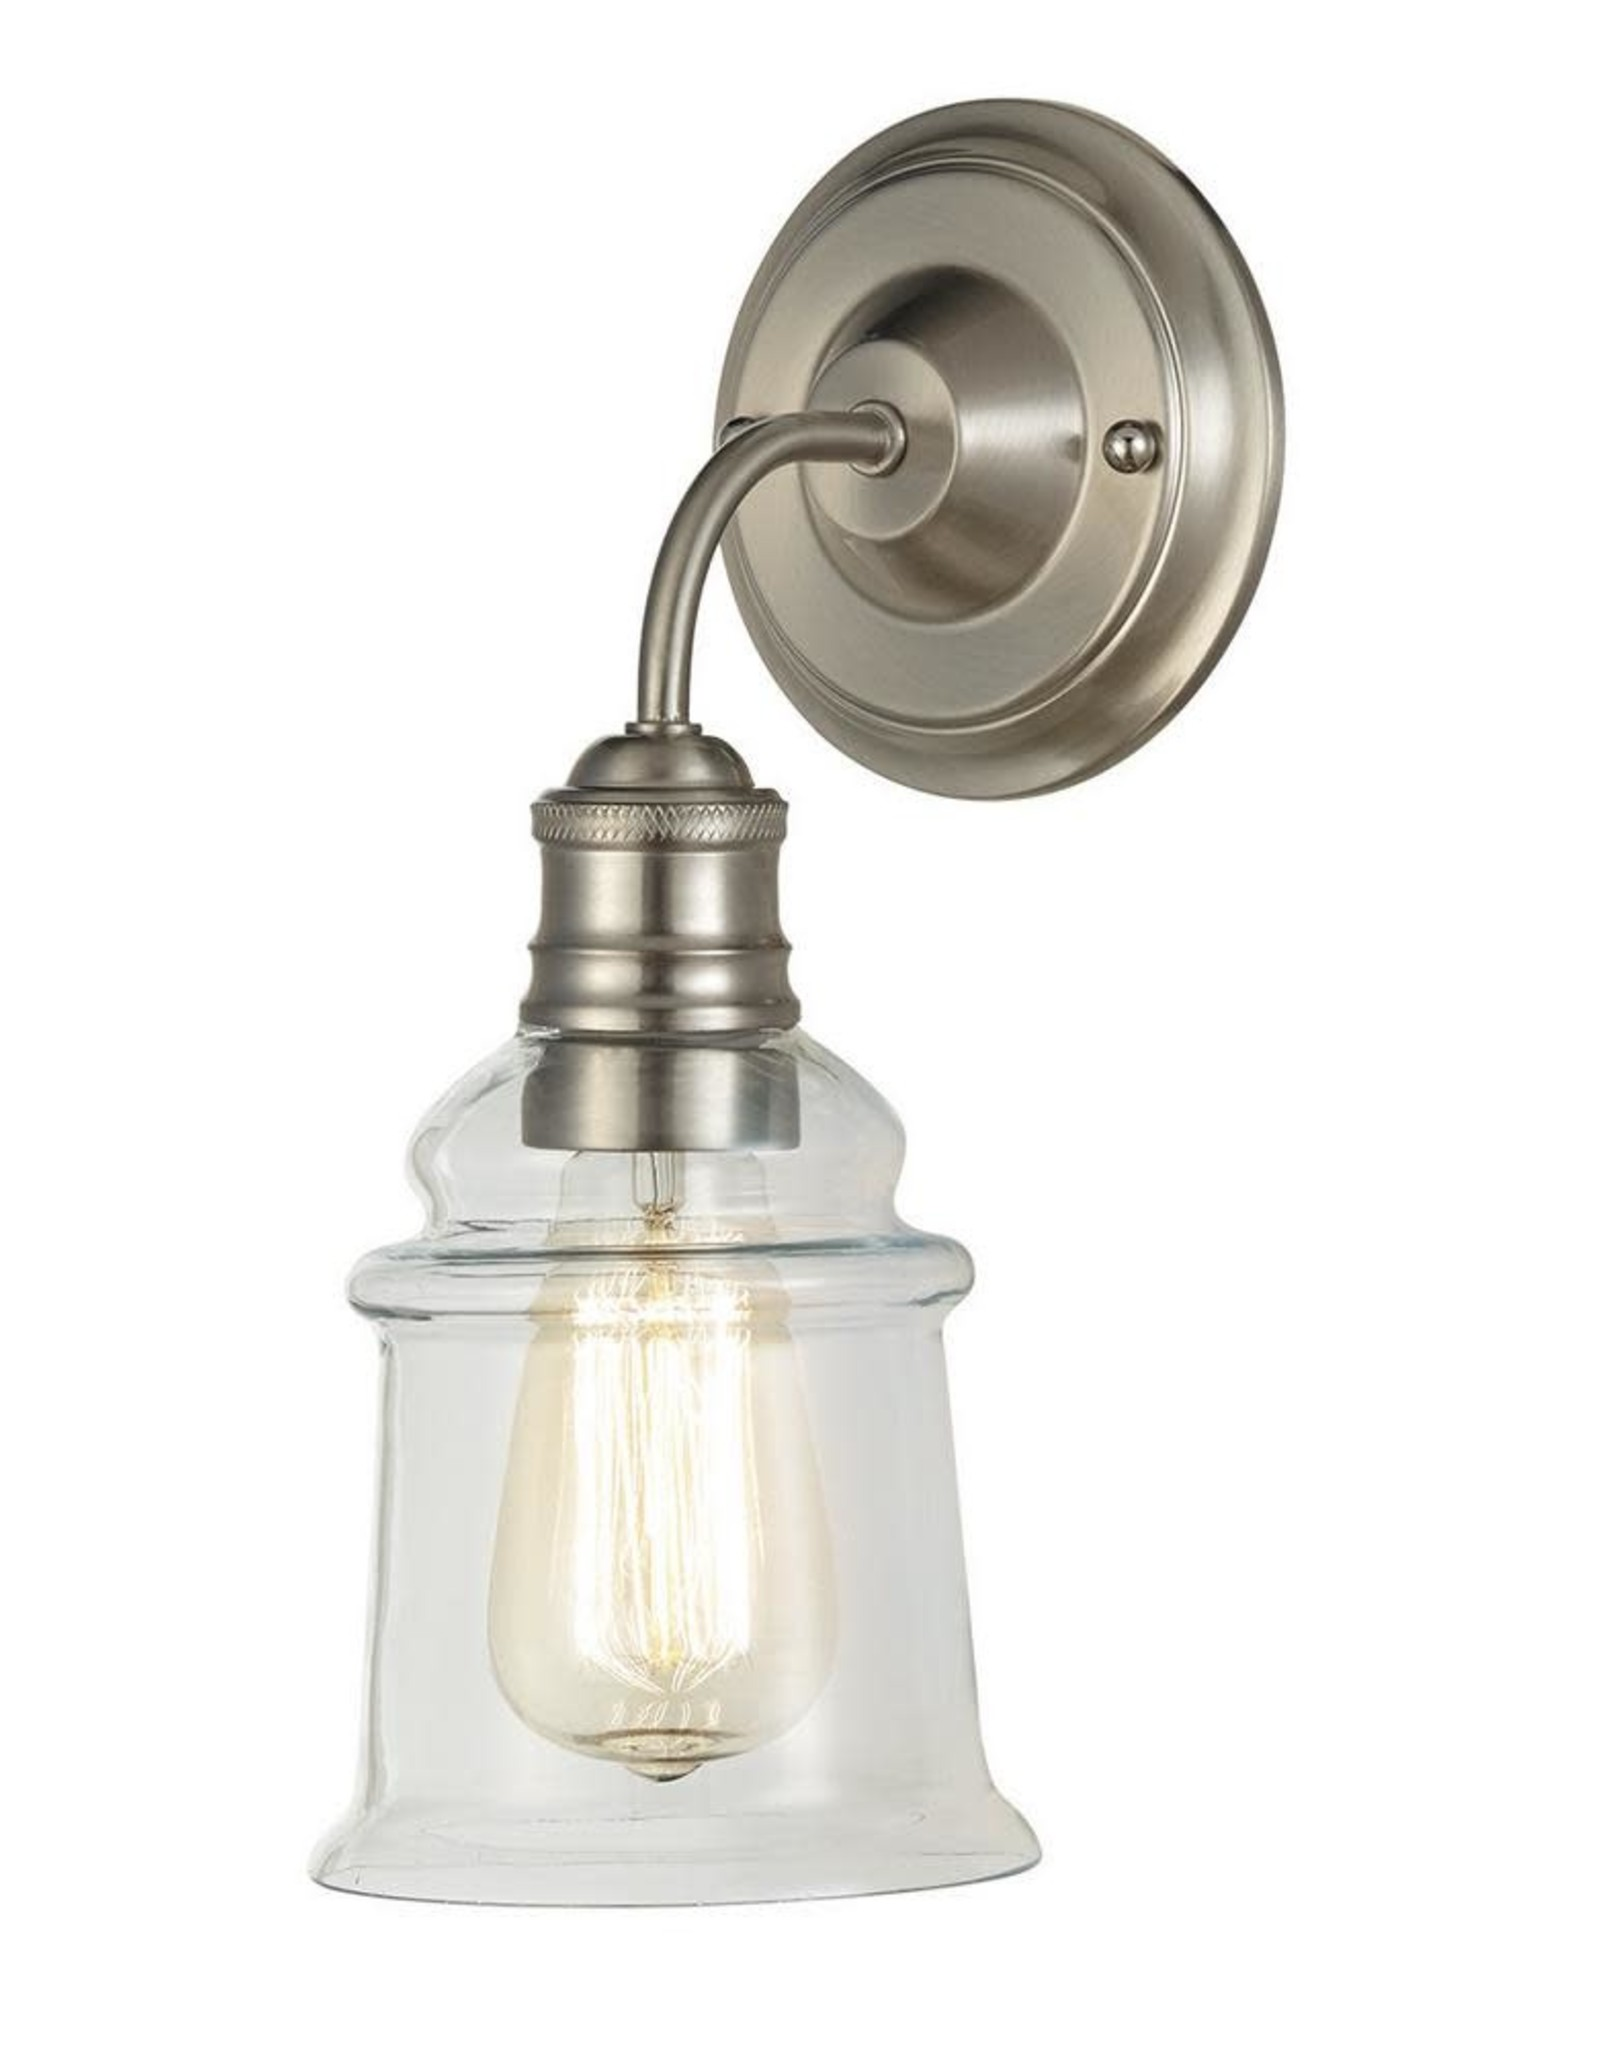 Home Decorators Collection 5.1 in. 1-Light Brushed Nickel Wall Sconce with Clear Glass